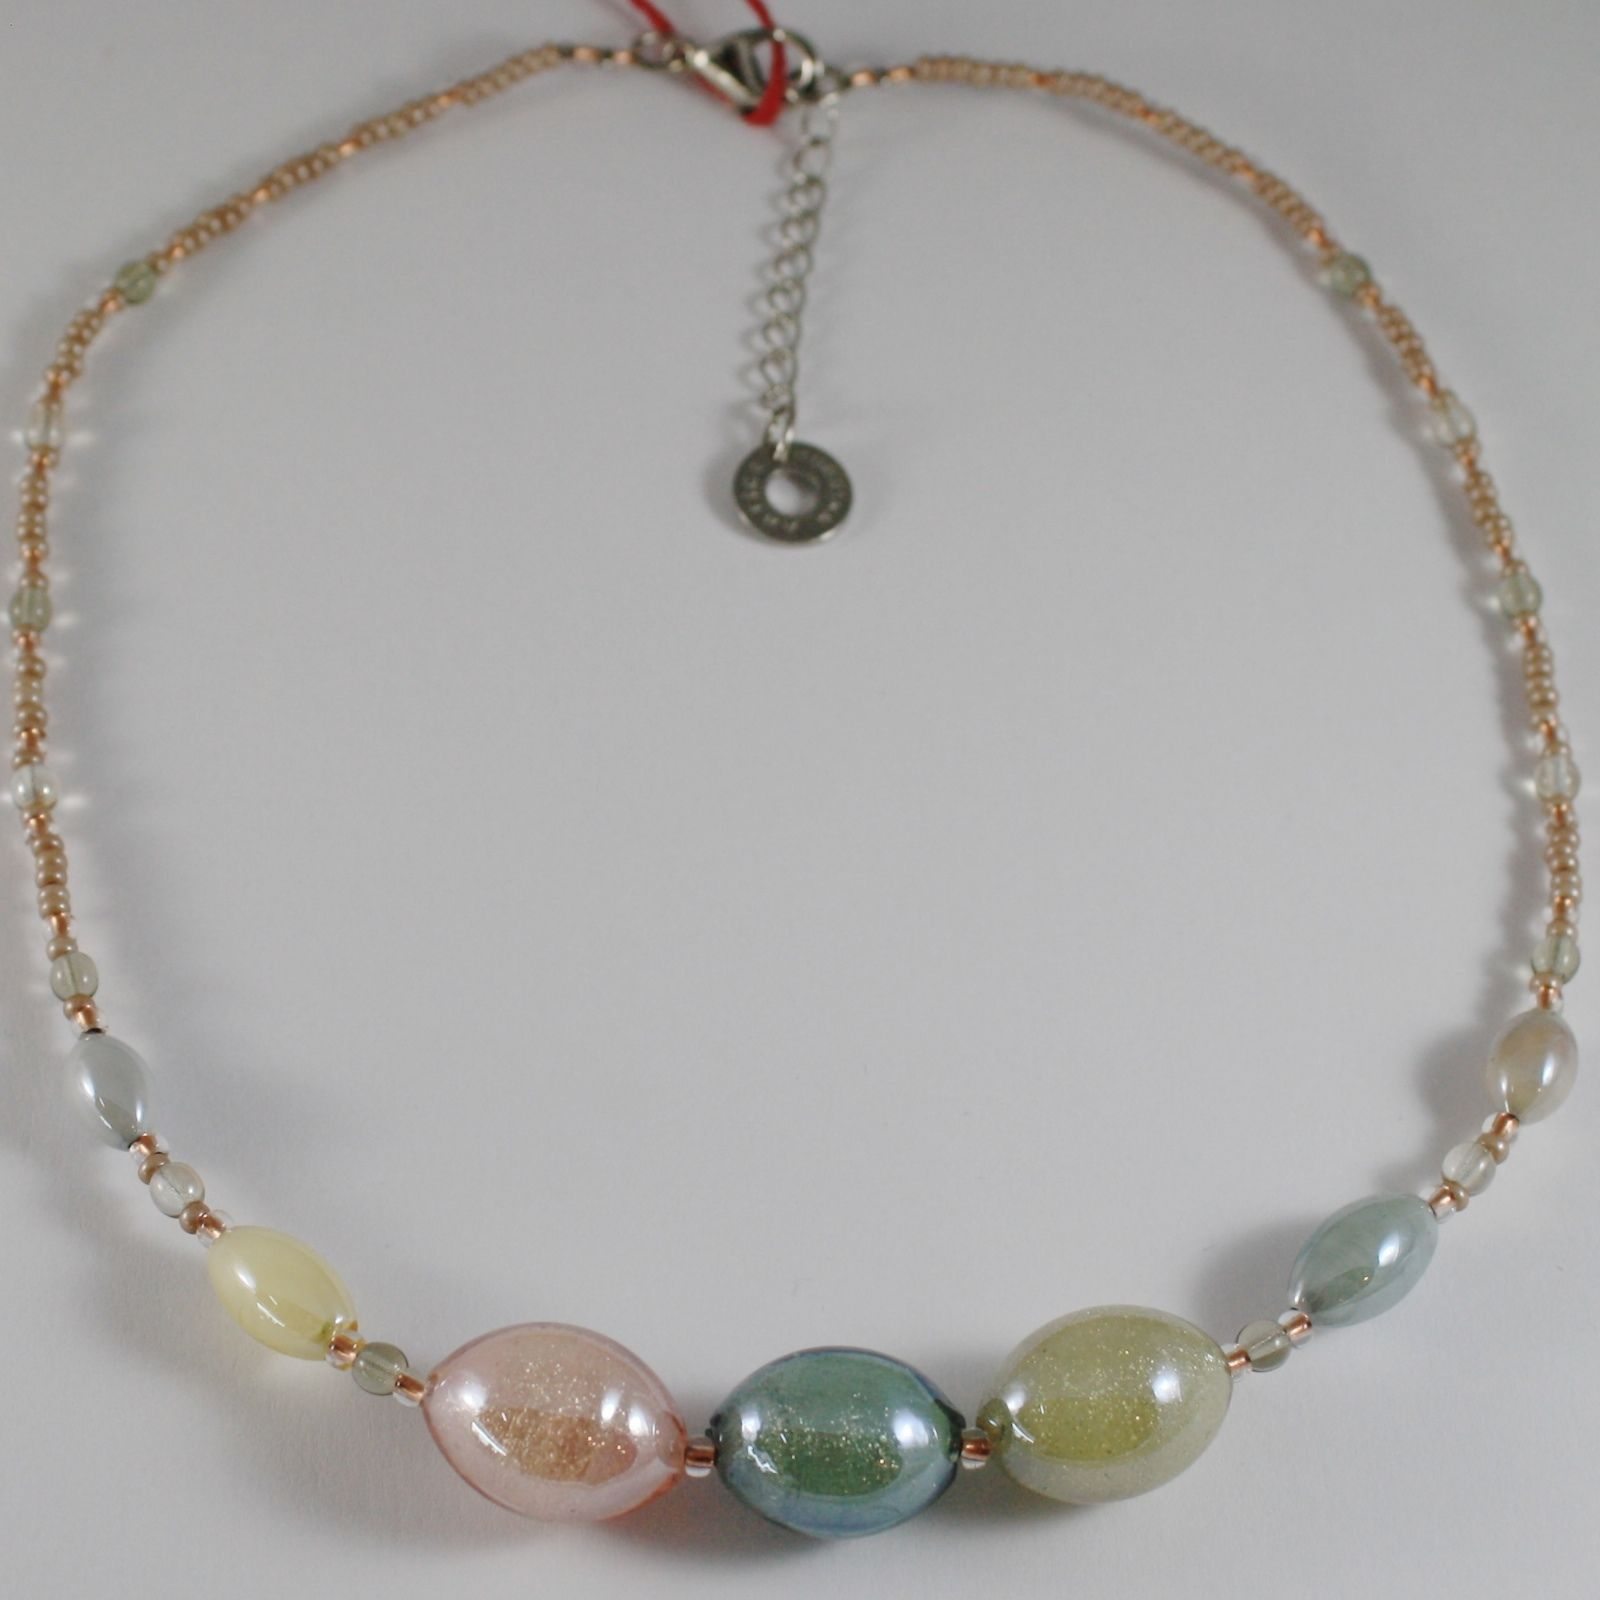 NECKLACE ANTICA MURRINA VENEZIA WITH MURANO GLASS BEIGE PINK GRAY CO994A03